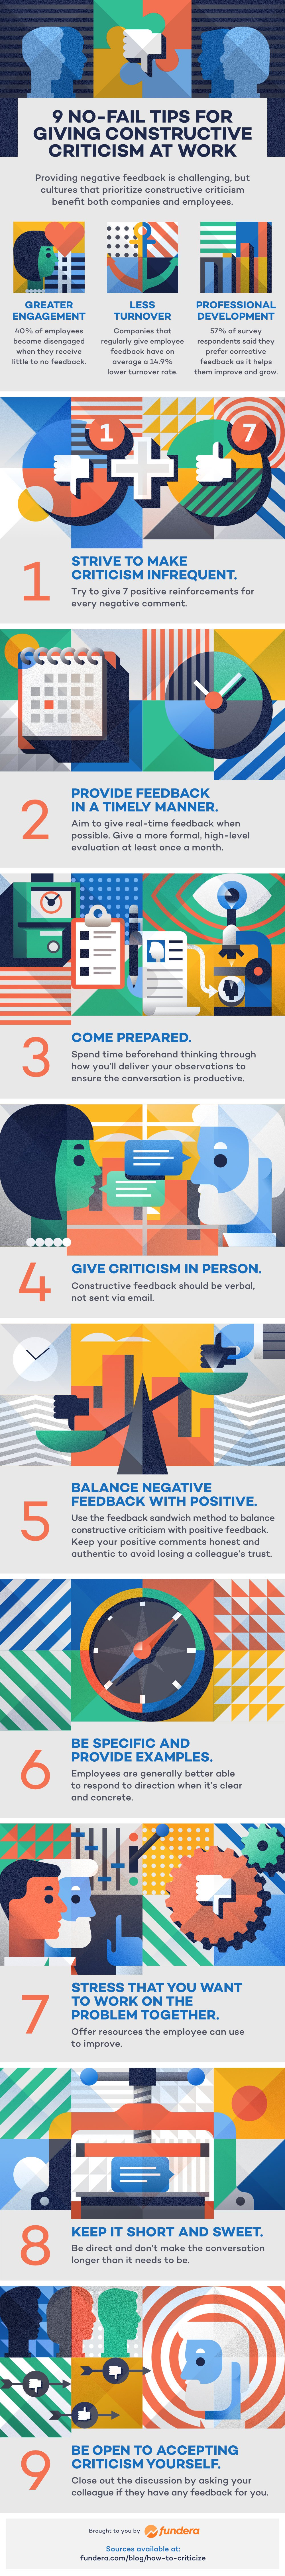 9 Tips for Constructive Criticism at Work